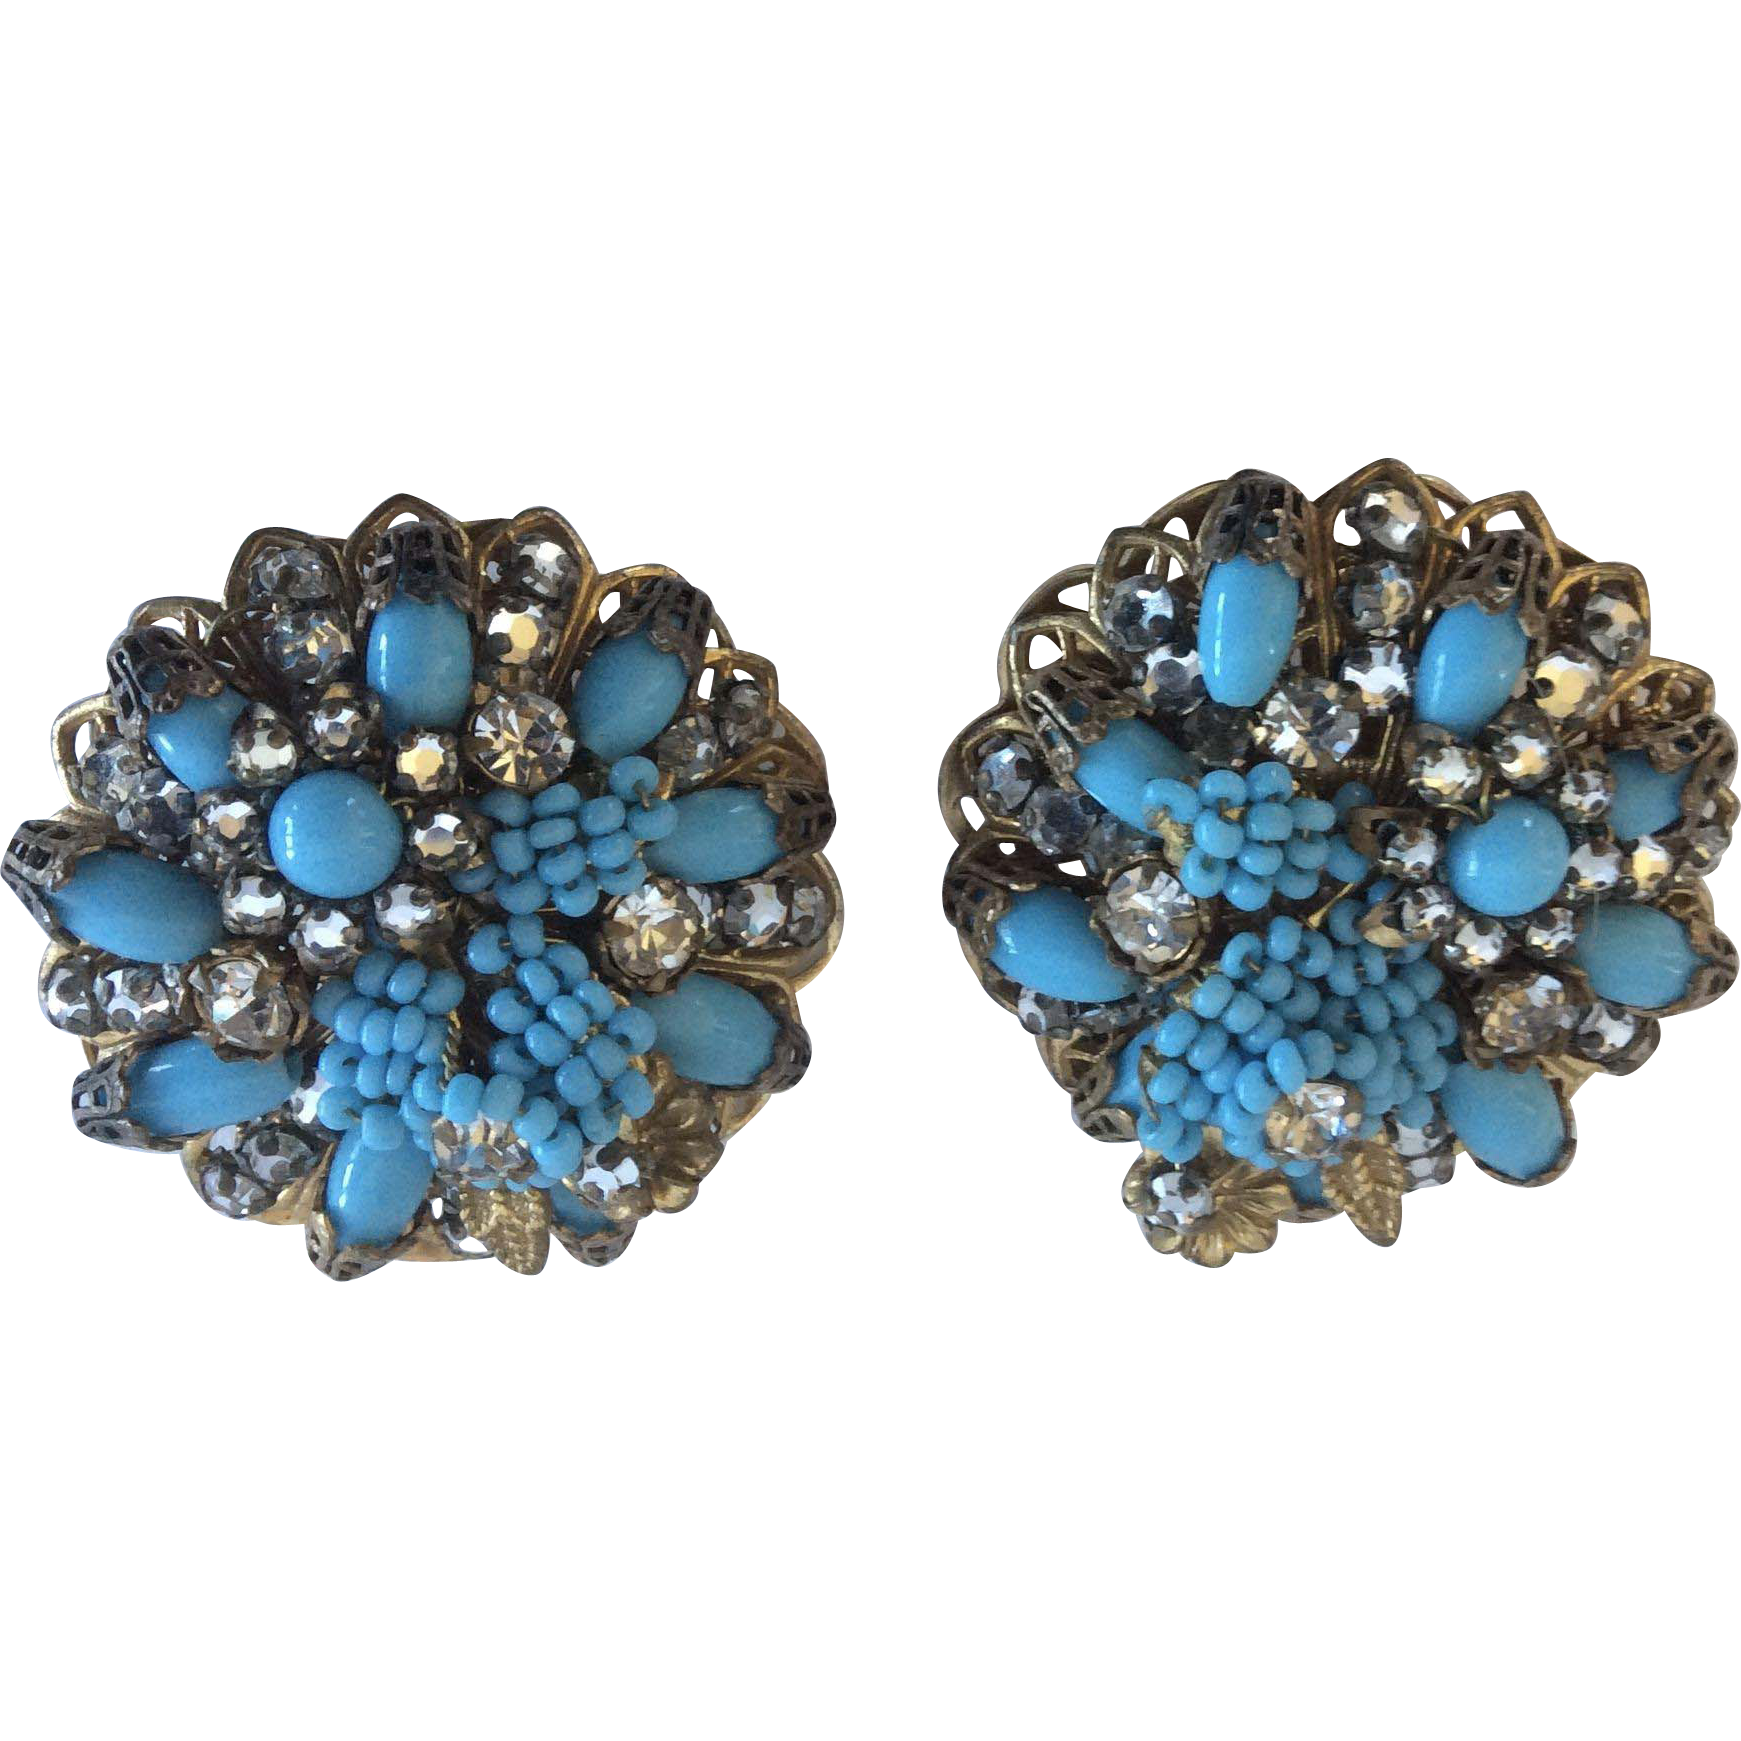 Jonné Agua Glass Bead Hand Wired Filigree Earrings, 1950s